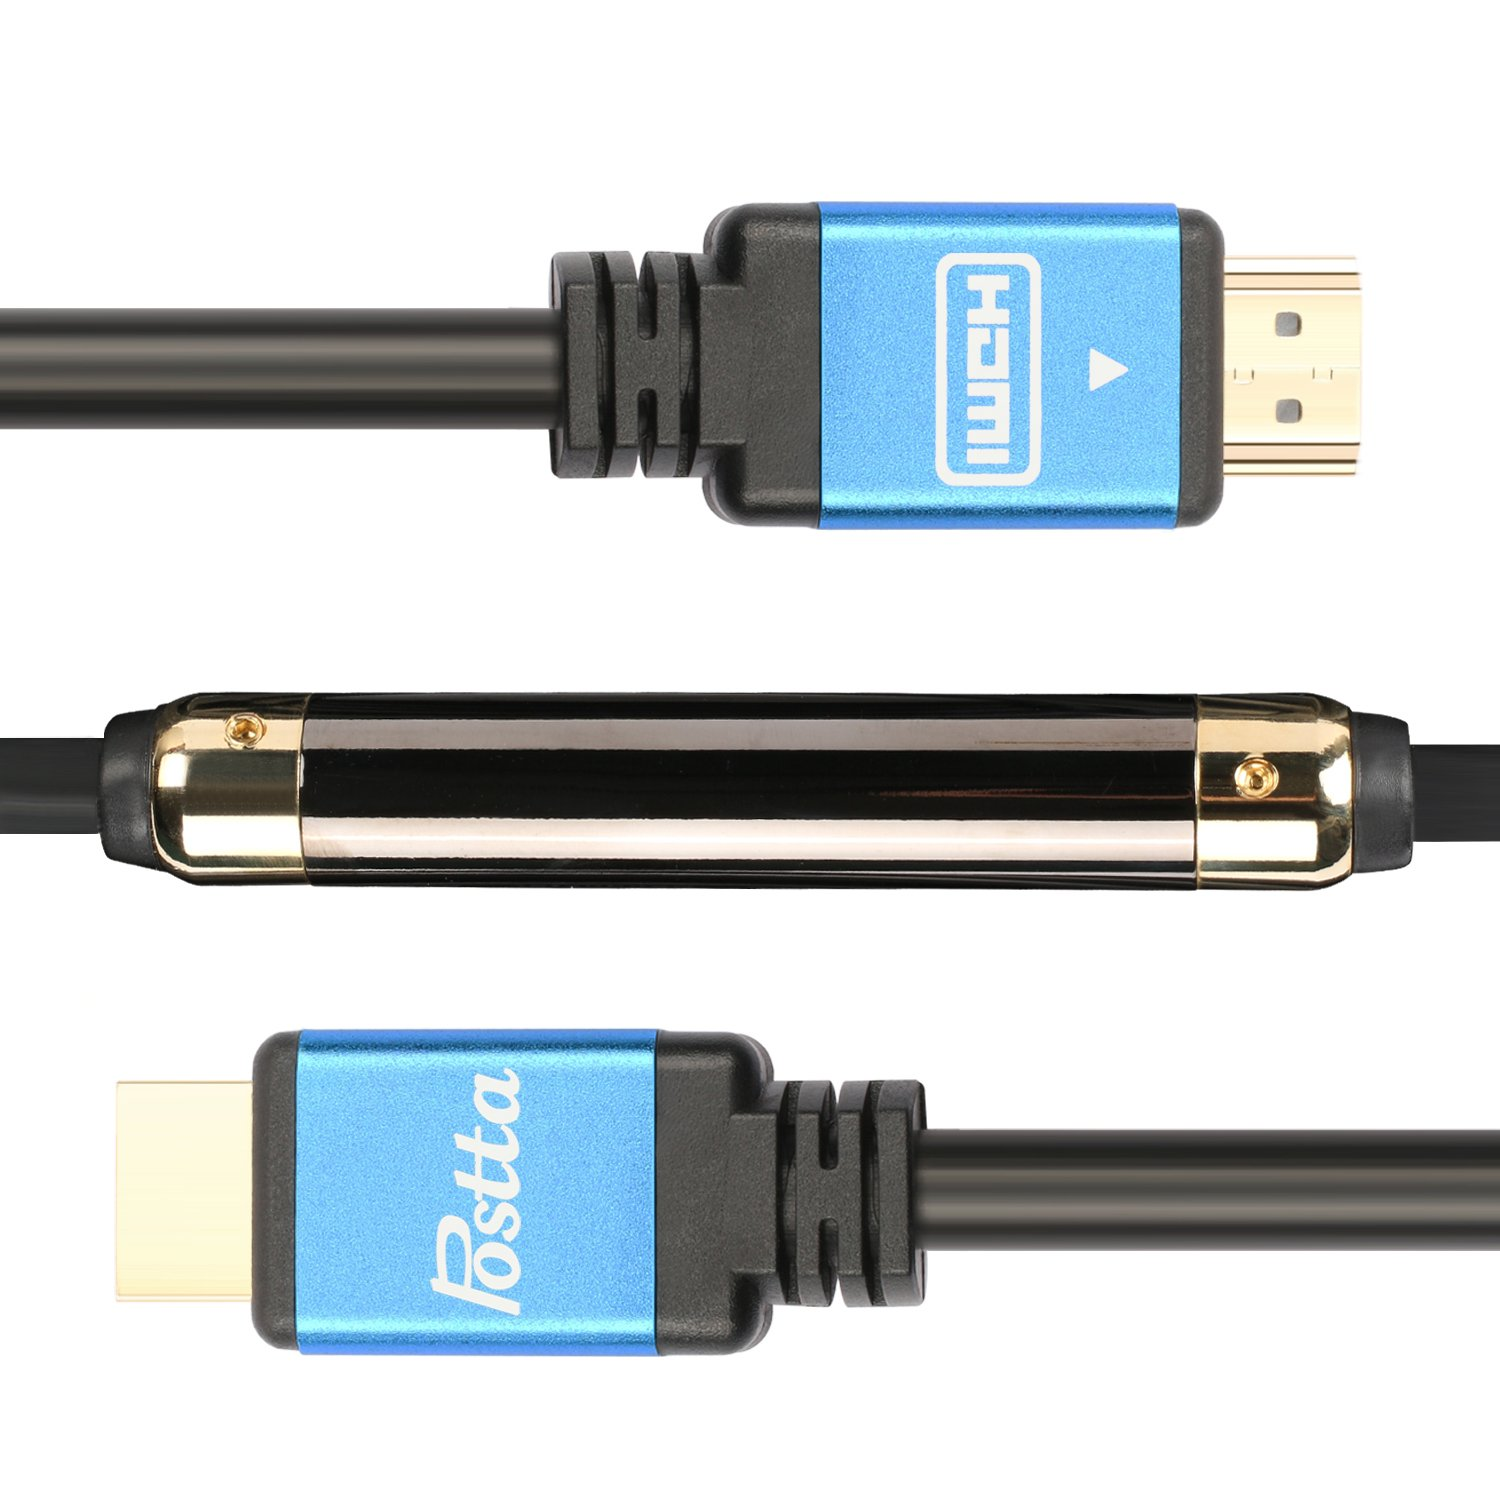 Amazon.com: Cable de apoyo Postta, ultra HDMI 2.0 voltios ...